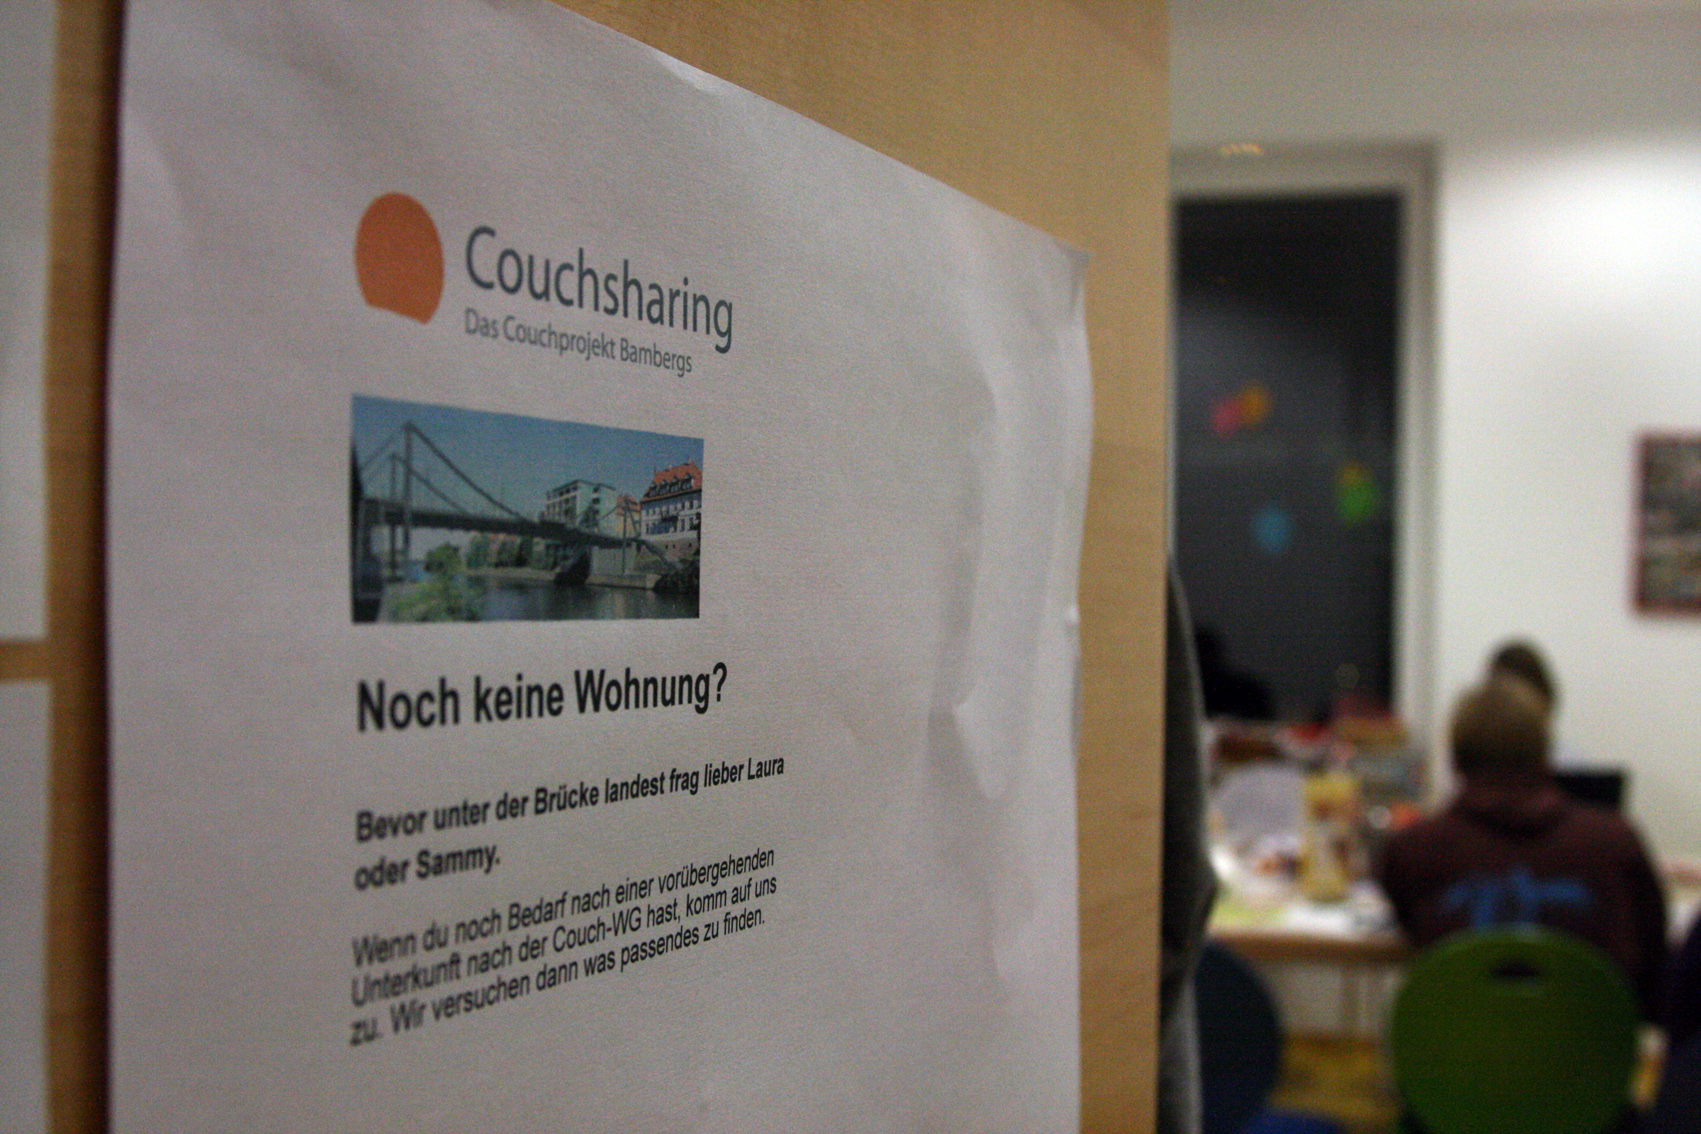 Couch WG im WS 2012